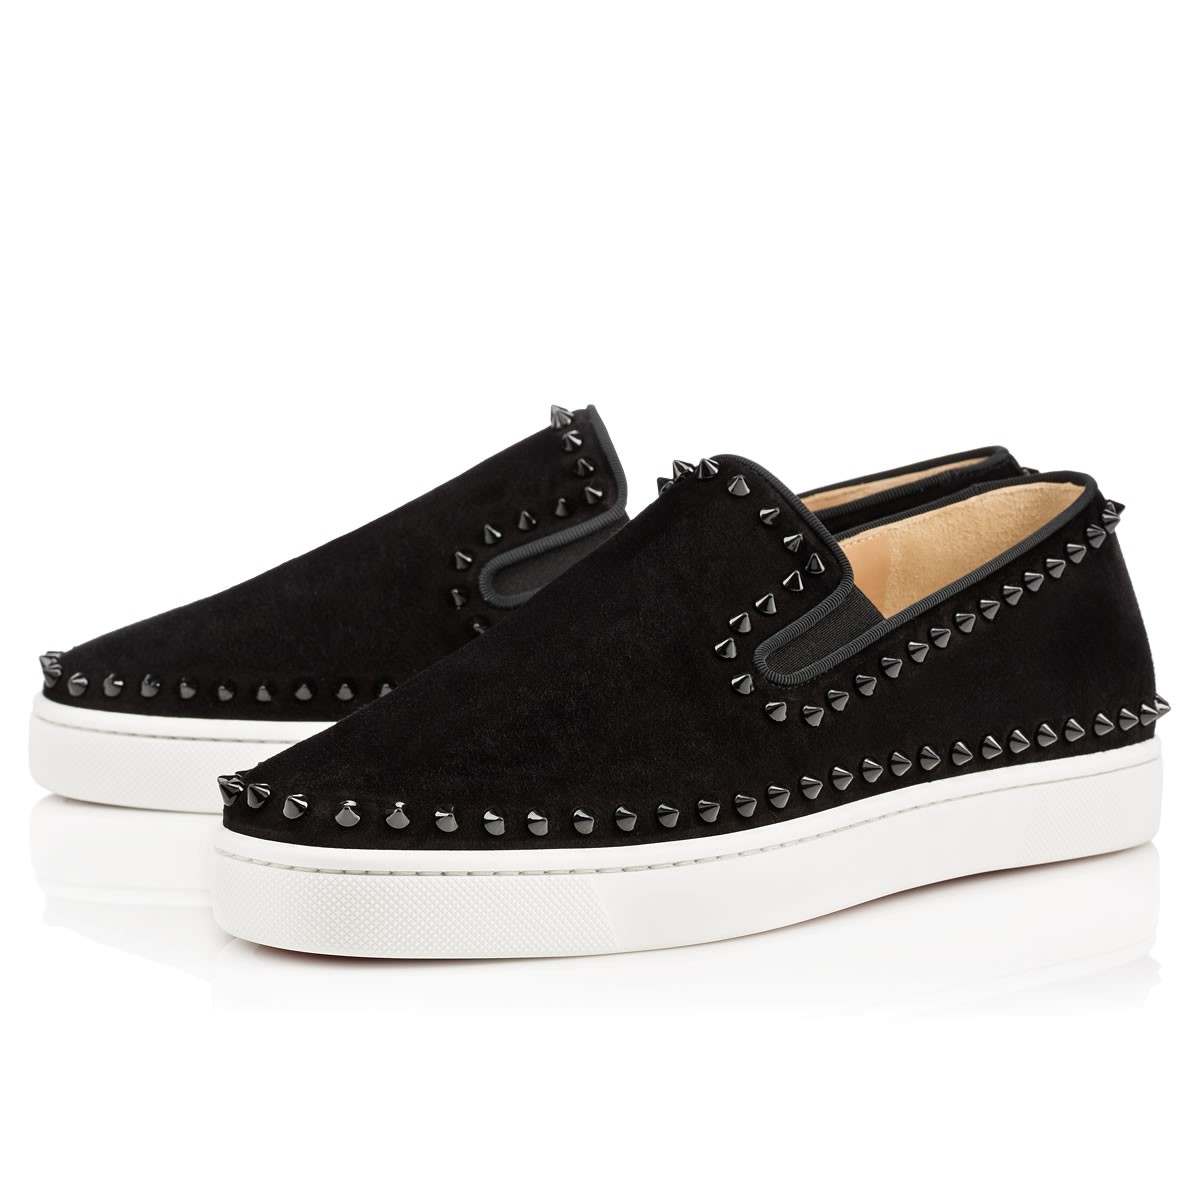 Christian Louboutin Spiked Slip-On Sneakers Visit Cheap Sale Enjoy Free Shipping Deals Sale Prices XsspO3IX